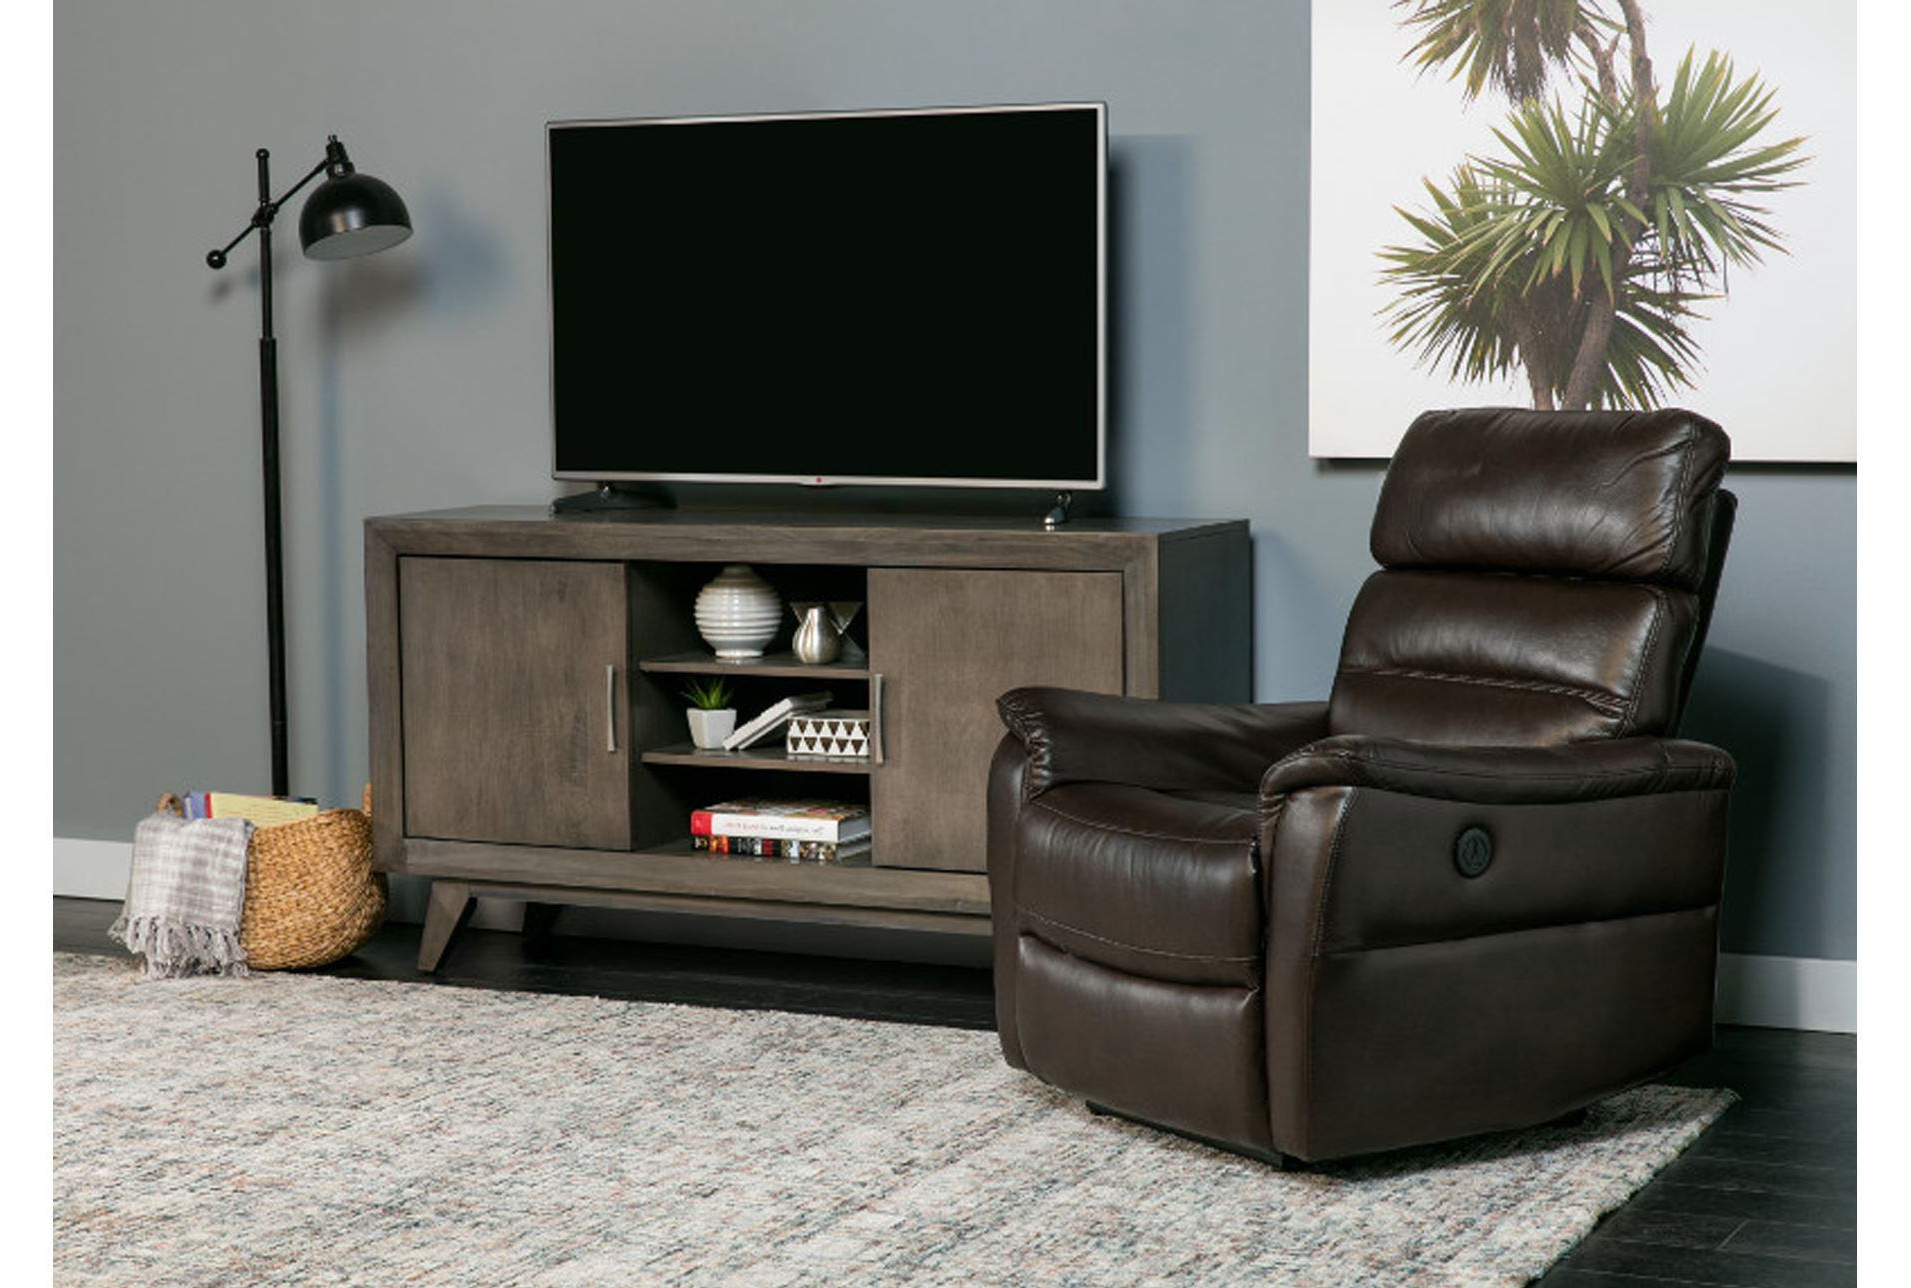 24 Stunning Living Spaces Tv Stand For Living Room Decor Ideas Intended For Jacen 78 Inch Tv Stands (View 12 of 20)